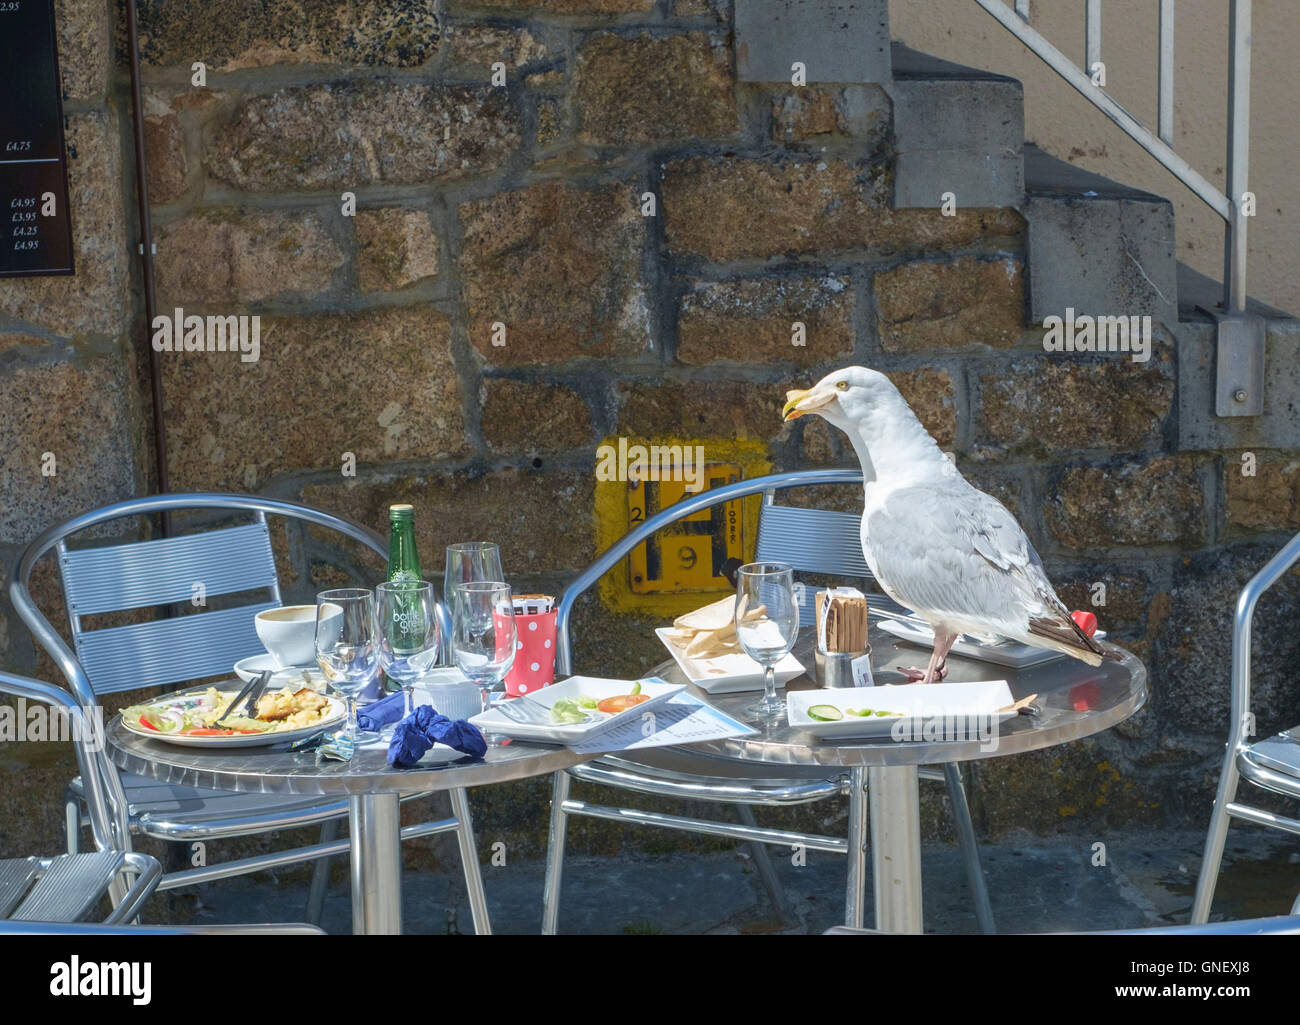 St Ives a seaside town in Cornwall England UK Scavenging seagull pest - Stock Image